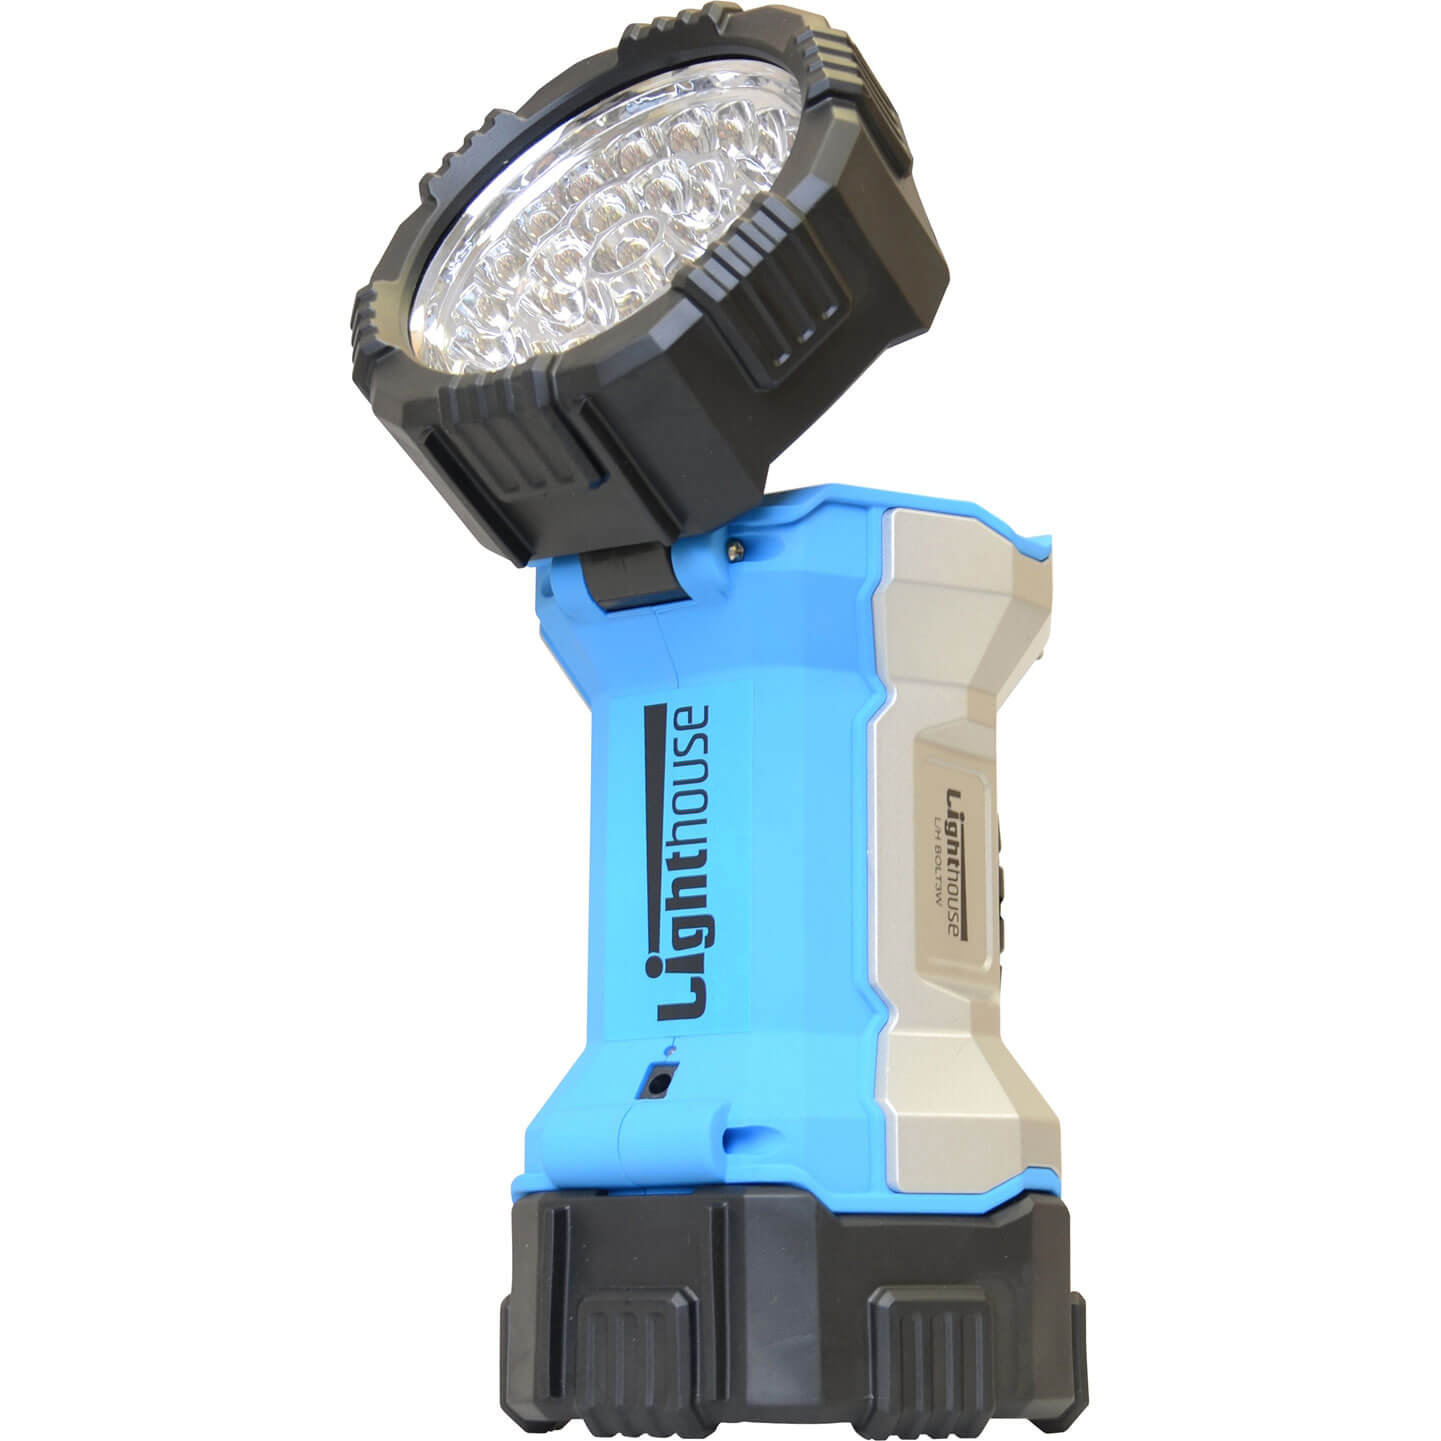 Lighthouse Bolt 3w CREE LED Rechargeable Flip Top Torch with Integral Lithium Ion Battery